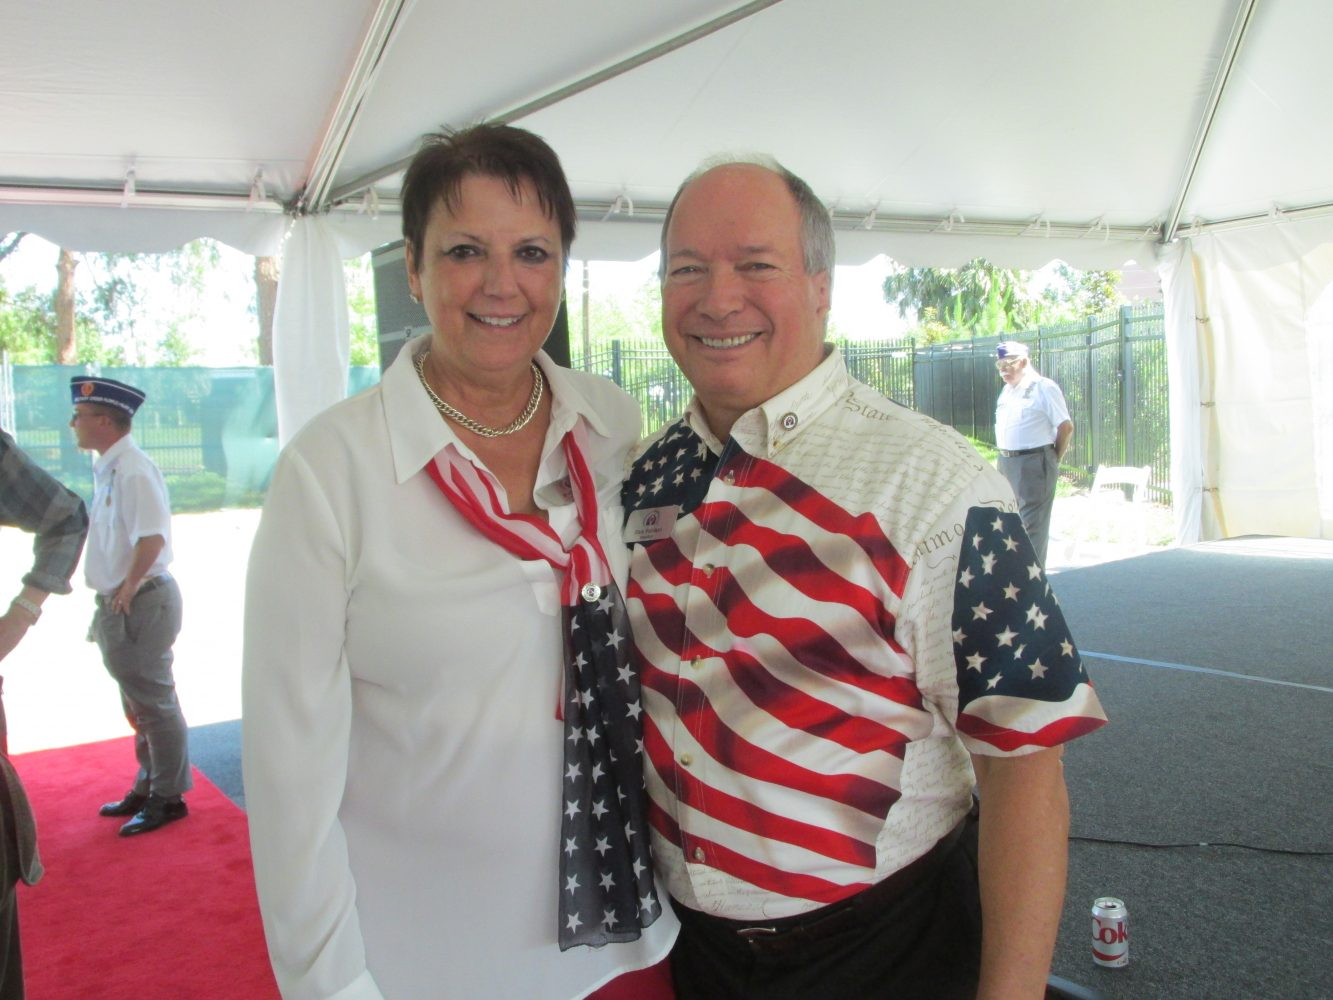 Rick and Patti Fabiani, President and Executive Director of the Gainesville Fisher House Foundation